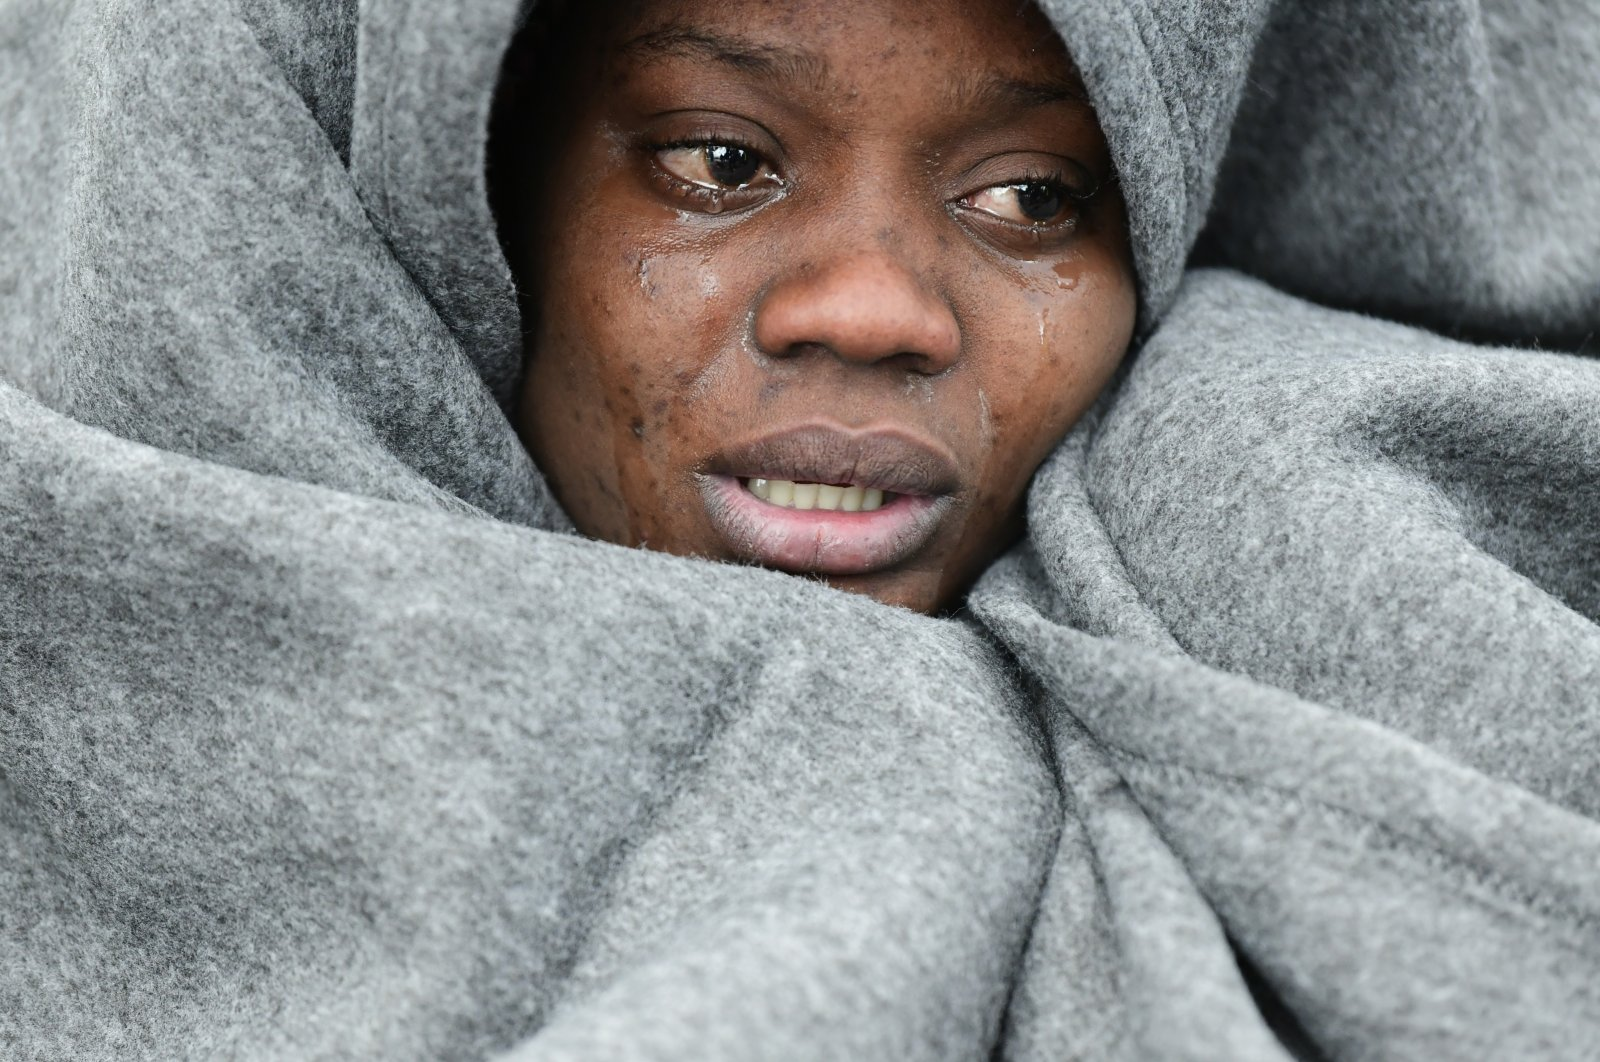 A migrant woman cries as she tries to warm herself upon the arrival of migrants at the village of Skala Sikaminias, on the Greek island of Lesbos, after crossing the Aegean sea from Turkey, Saturday, Feb. 29, 2020. (AP Photo)